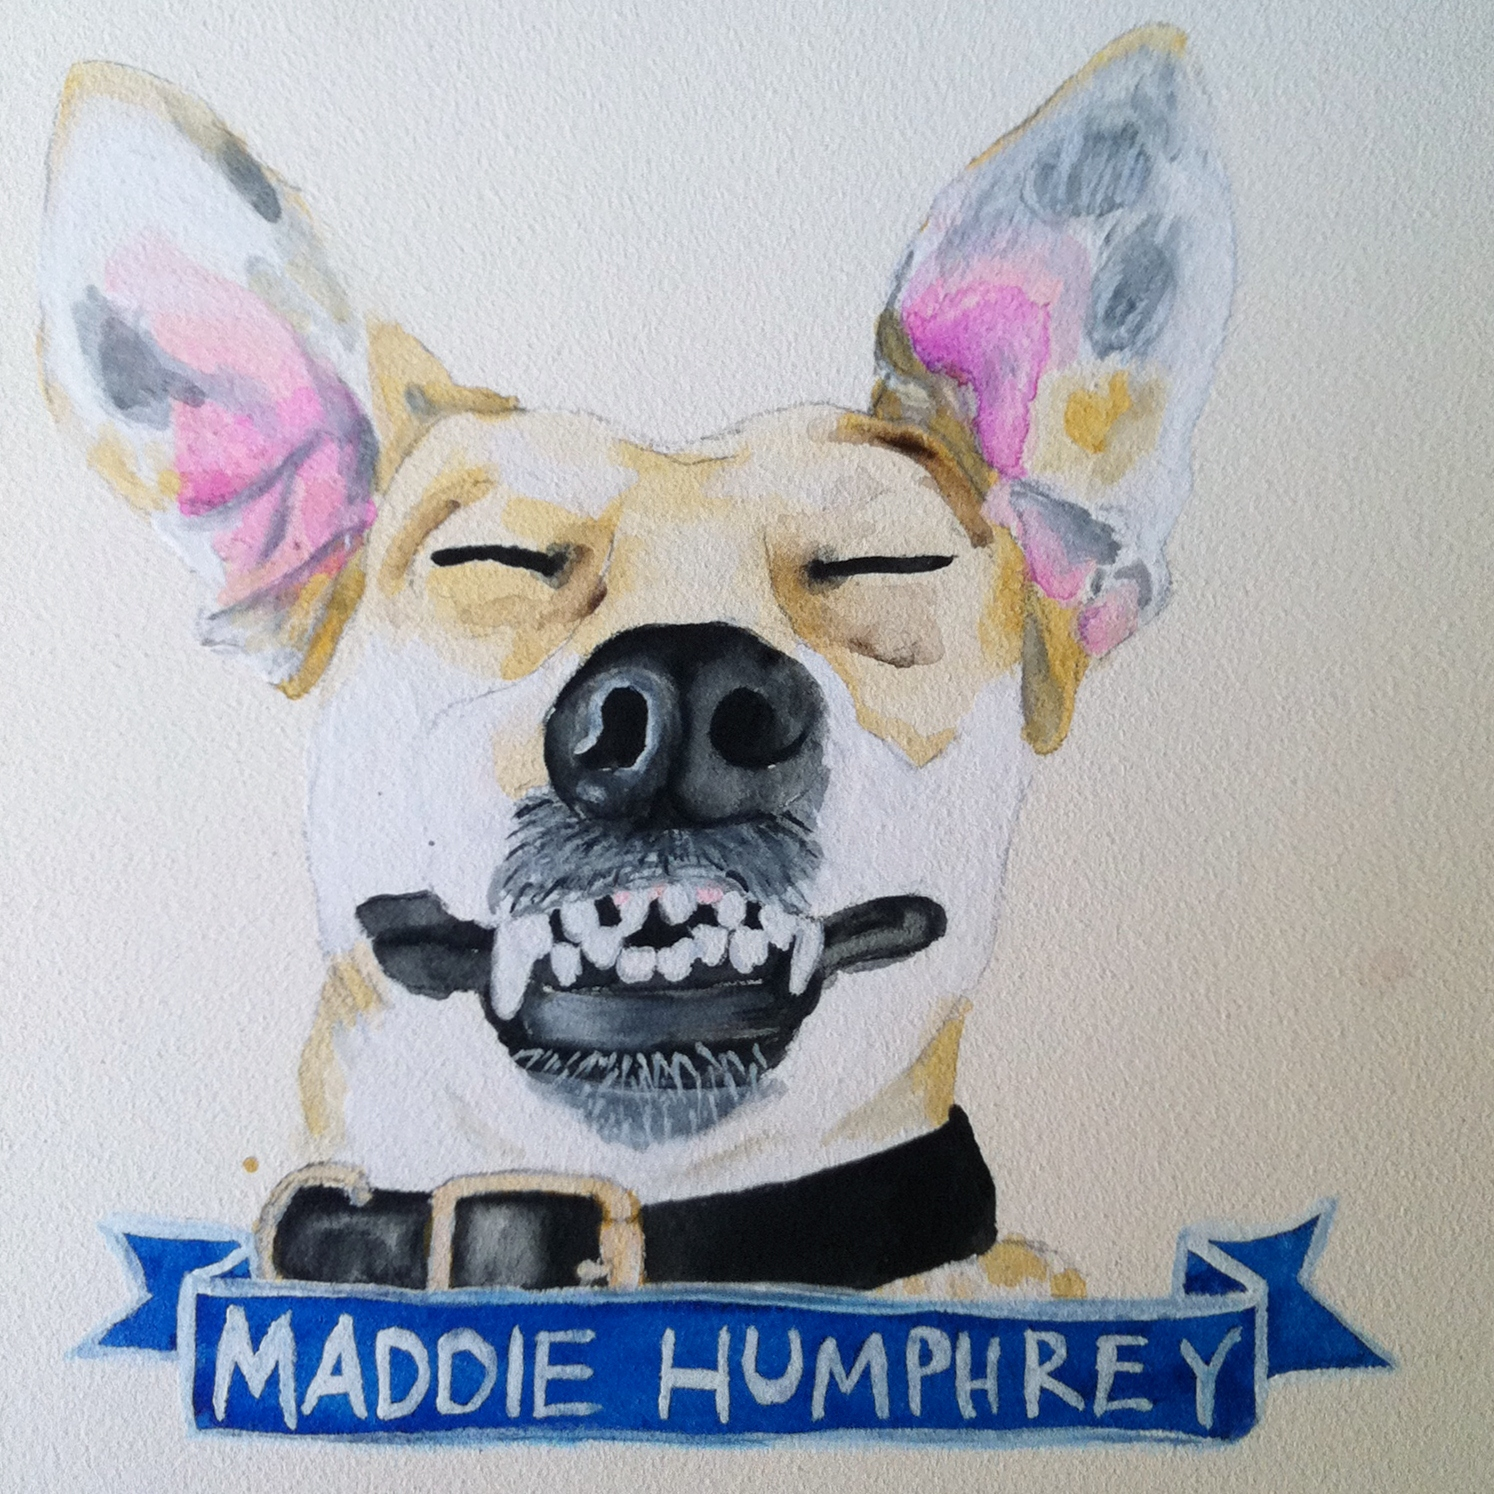 Talent Loves Company at Barbara Archer Gallery: 365 portraits by Lydia Walls - Maddie Humphrey